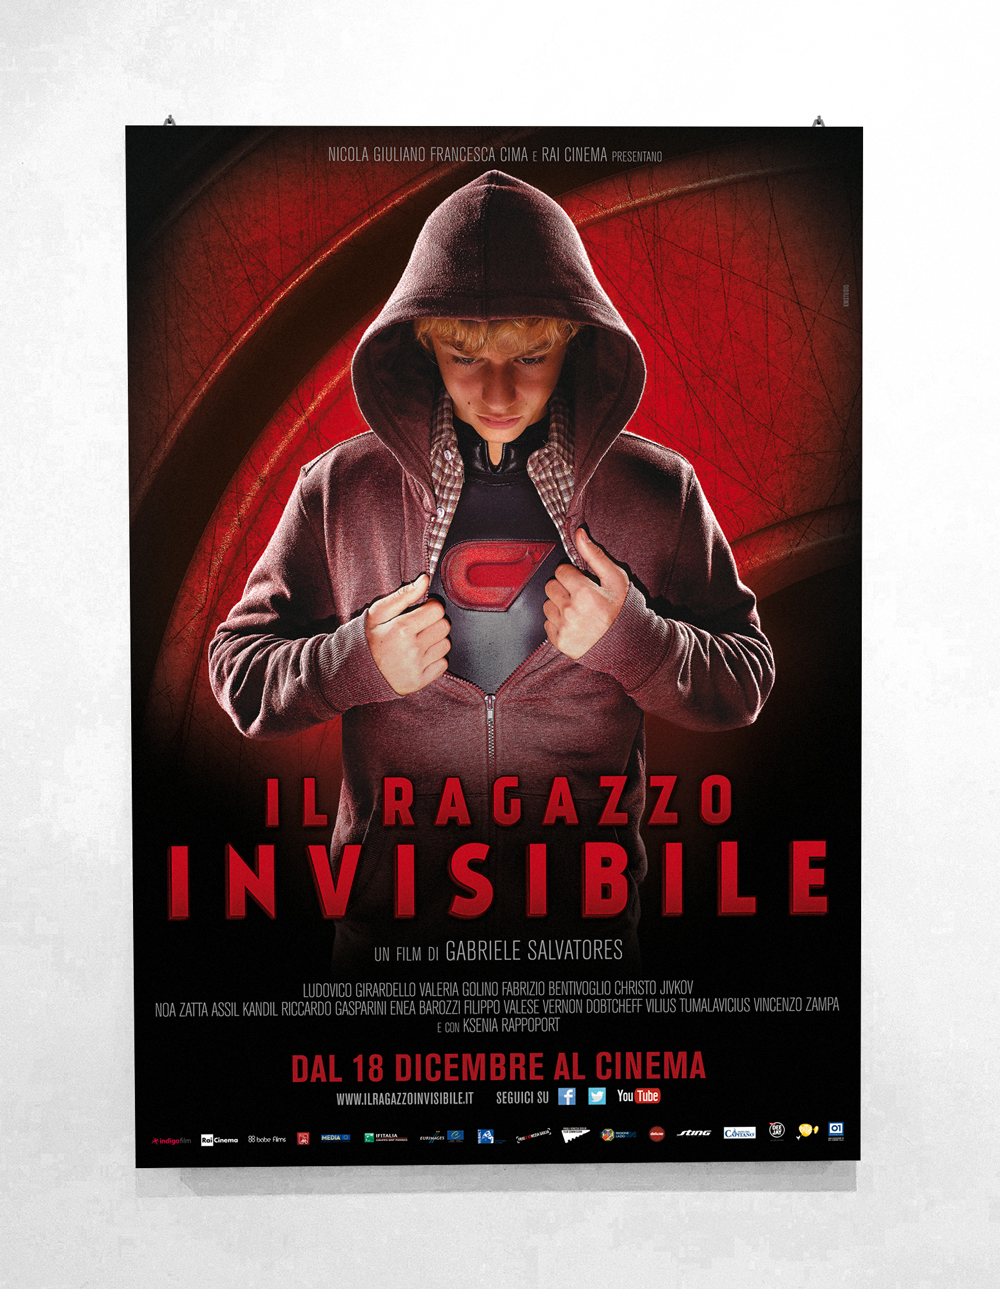 Il Ragazzo Invisibile - Directed by Gabriele Salvatores - Official Poster